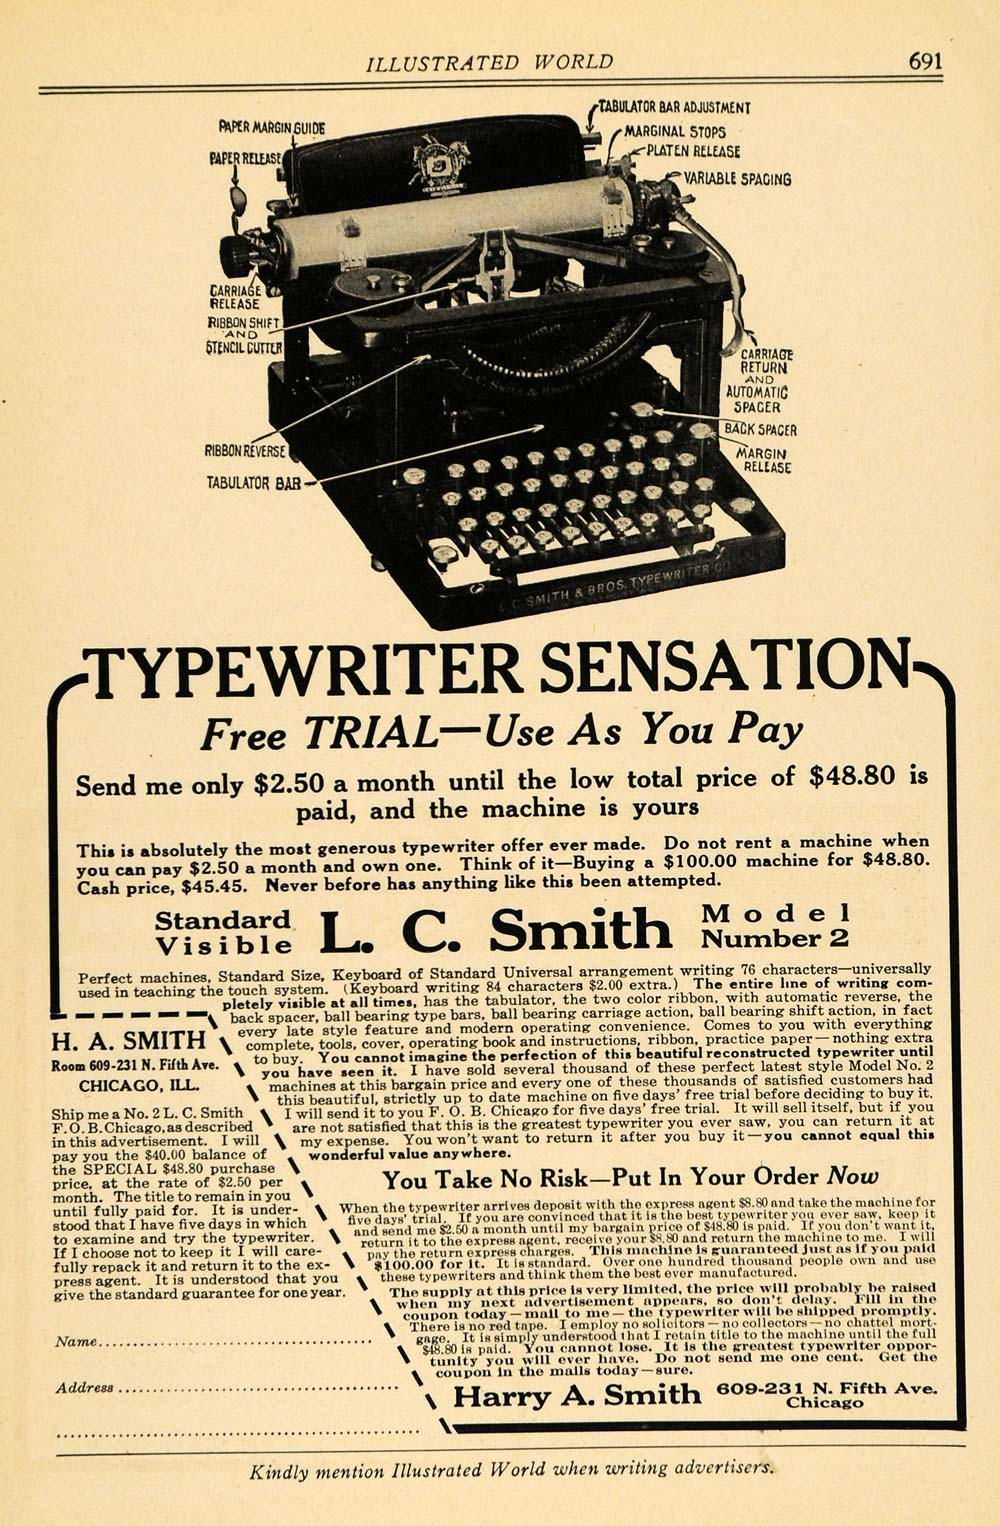 1916 Ad Harry A. Smith L. C. Model Number 2 Typewriters - ORIGINAL ILW1